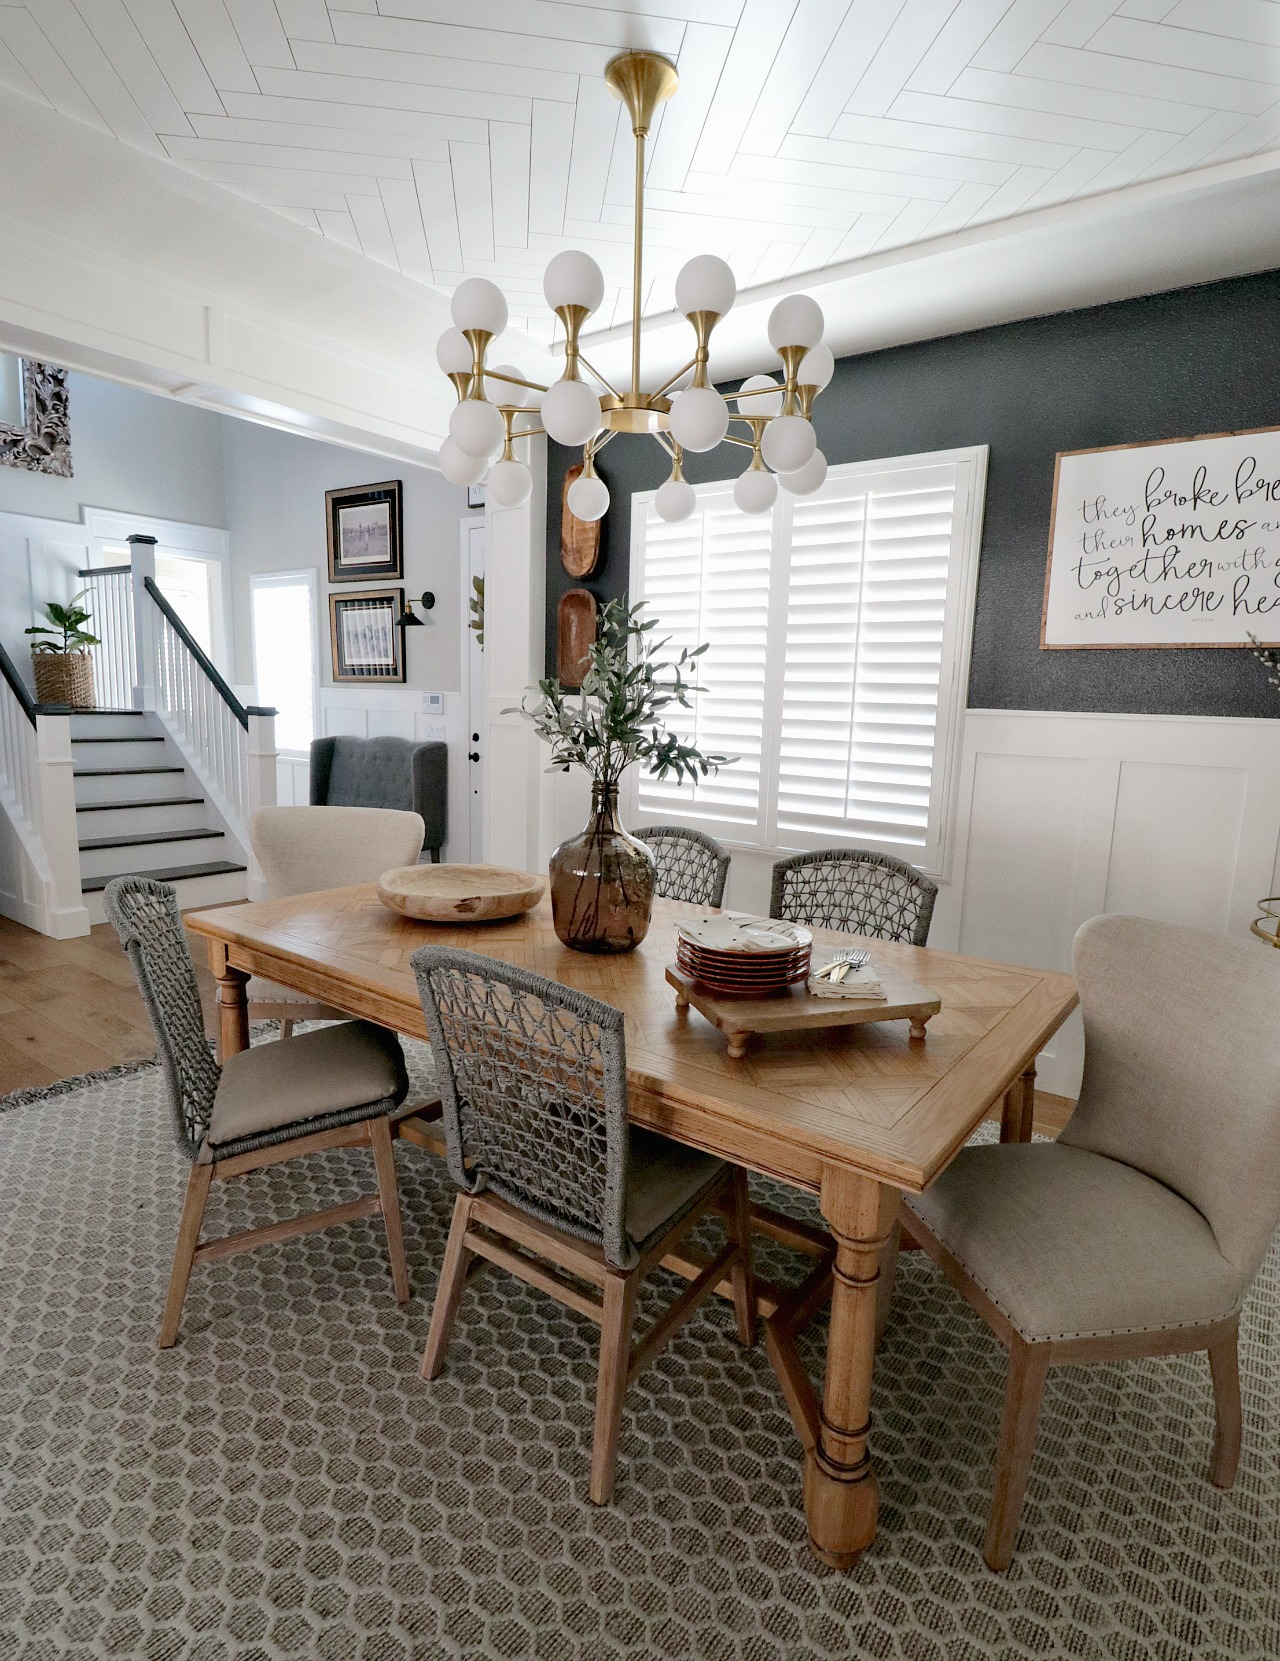 Hello And Welcome To My Dining Room Refresh Blog Post! My Dining Room Had  Been A Space In My Home That I Have Never Fully Felt Content With.